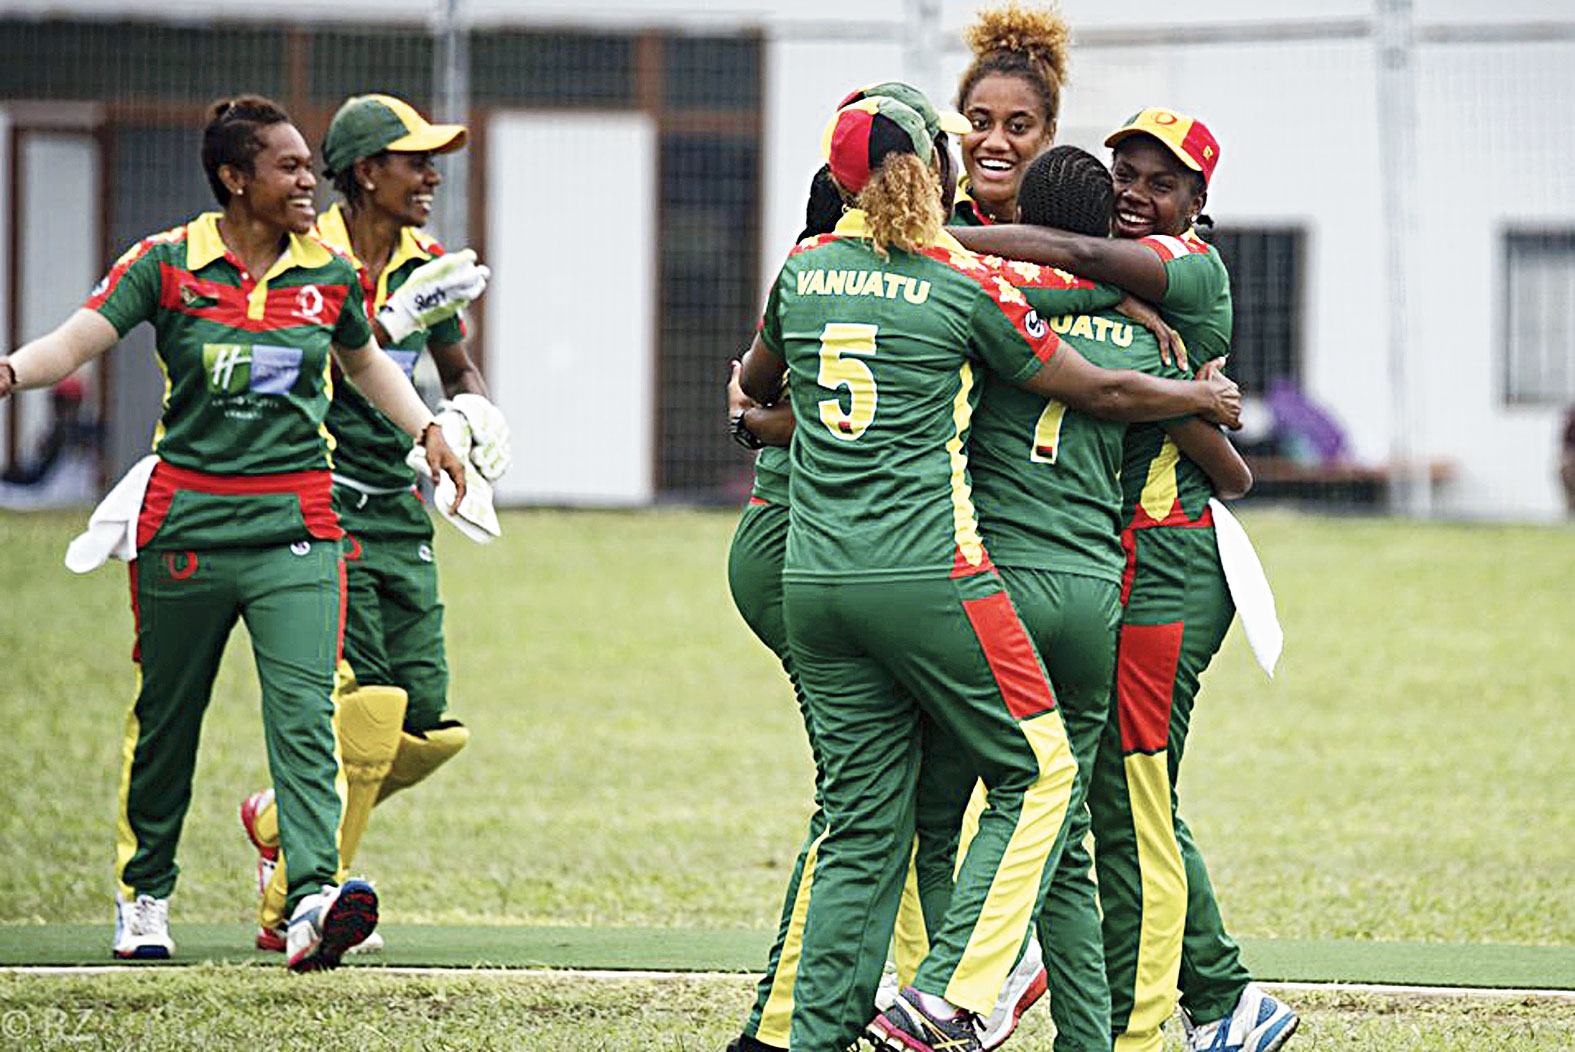 Vanuatu Cricket Association players celebrate during a women's cricket match in Port Vila, Vanuatu. The tropical island in the South Pacific is very likely to be the only venue in the world hosting a competitive cricket final on Saturday.